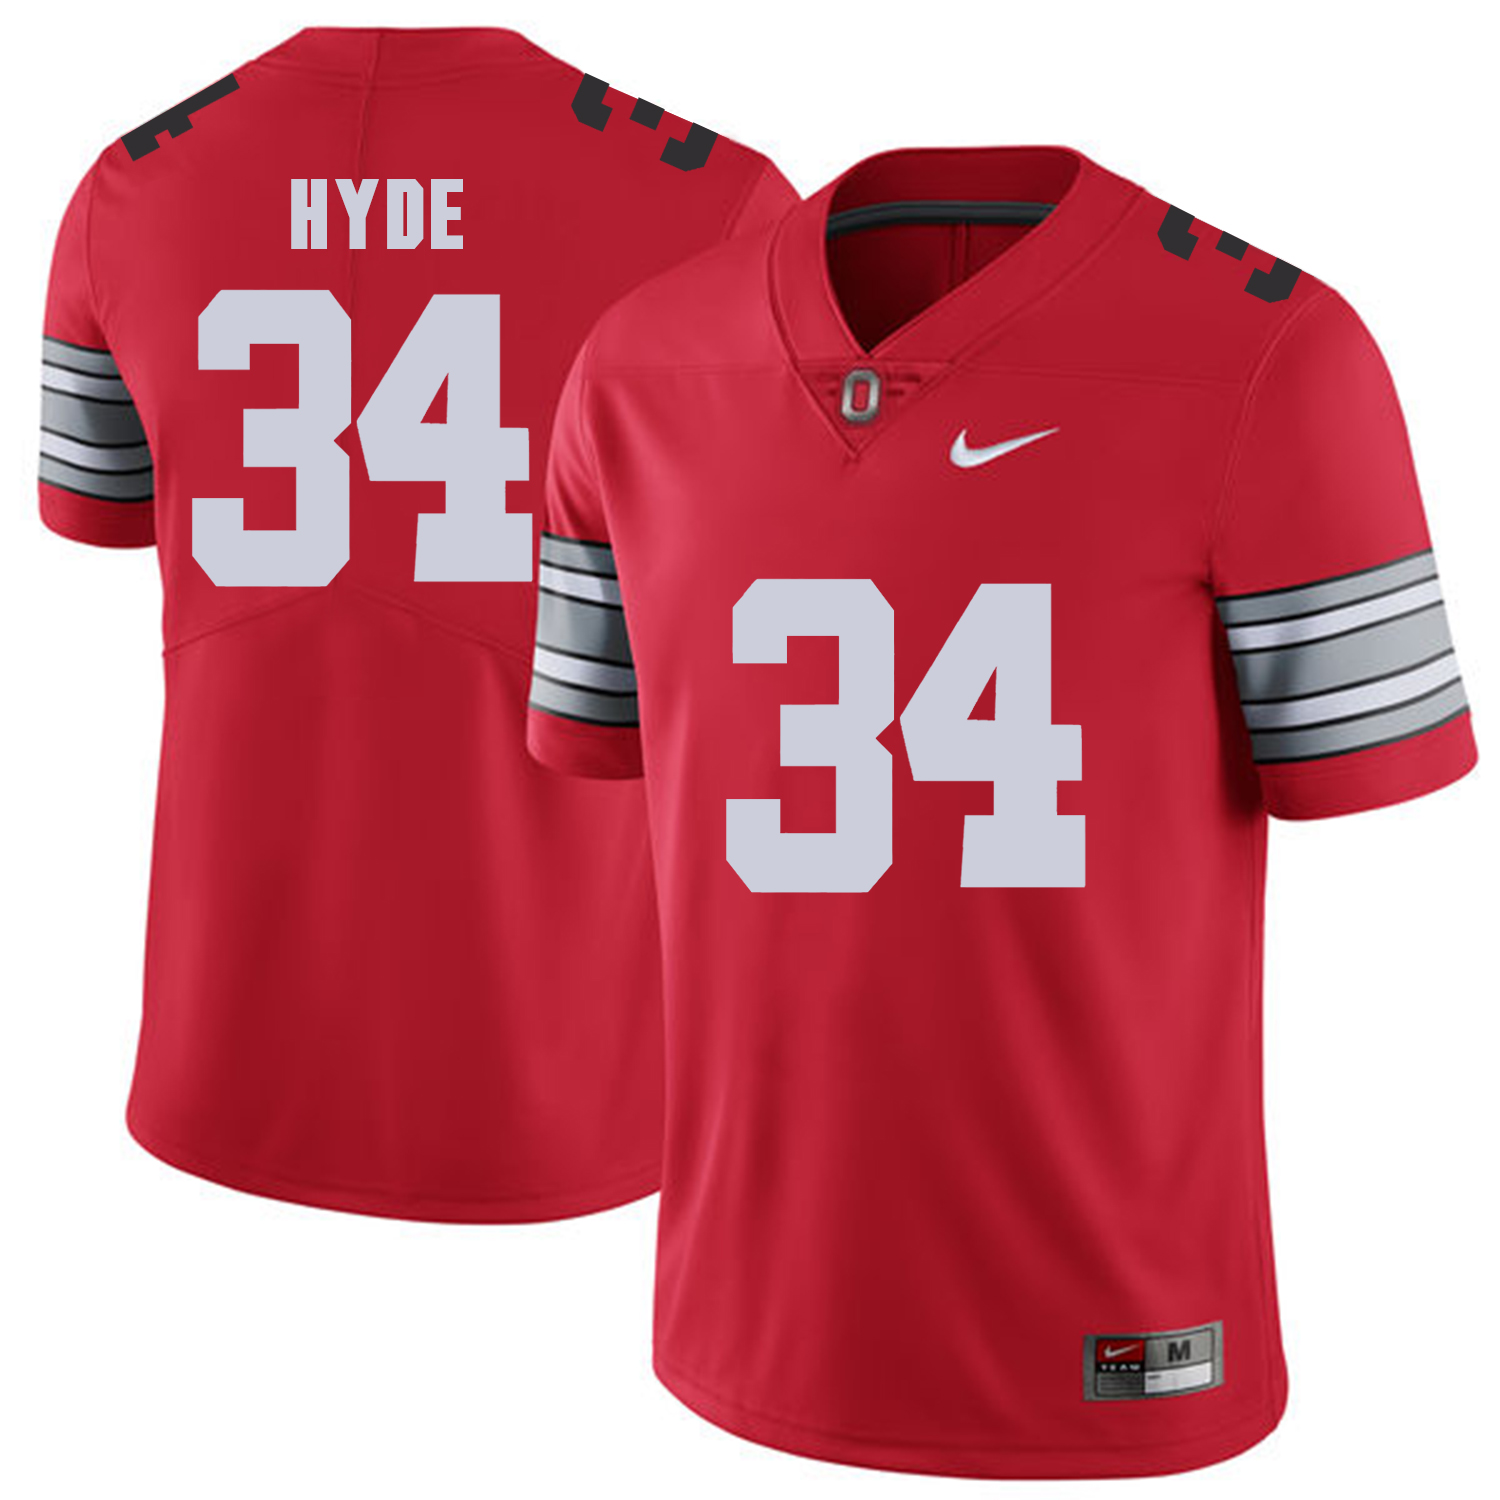 Men Ohio State 34 Hyde Red Customized NCAA Jerseys